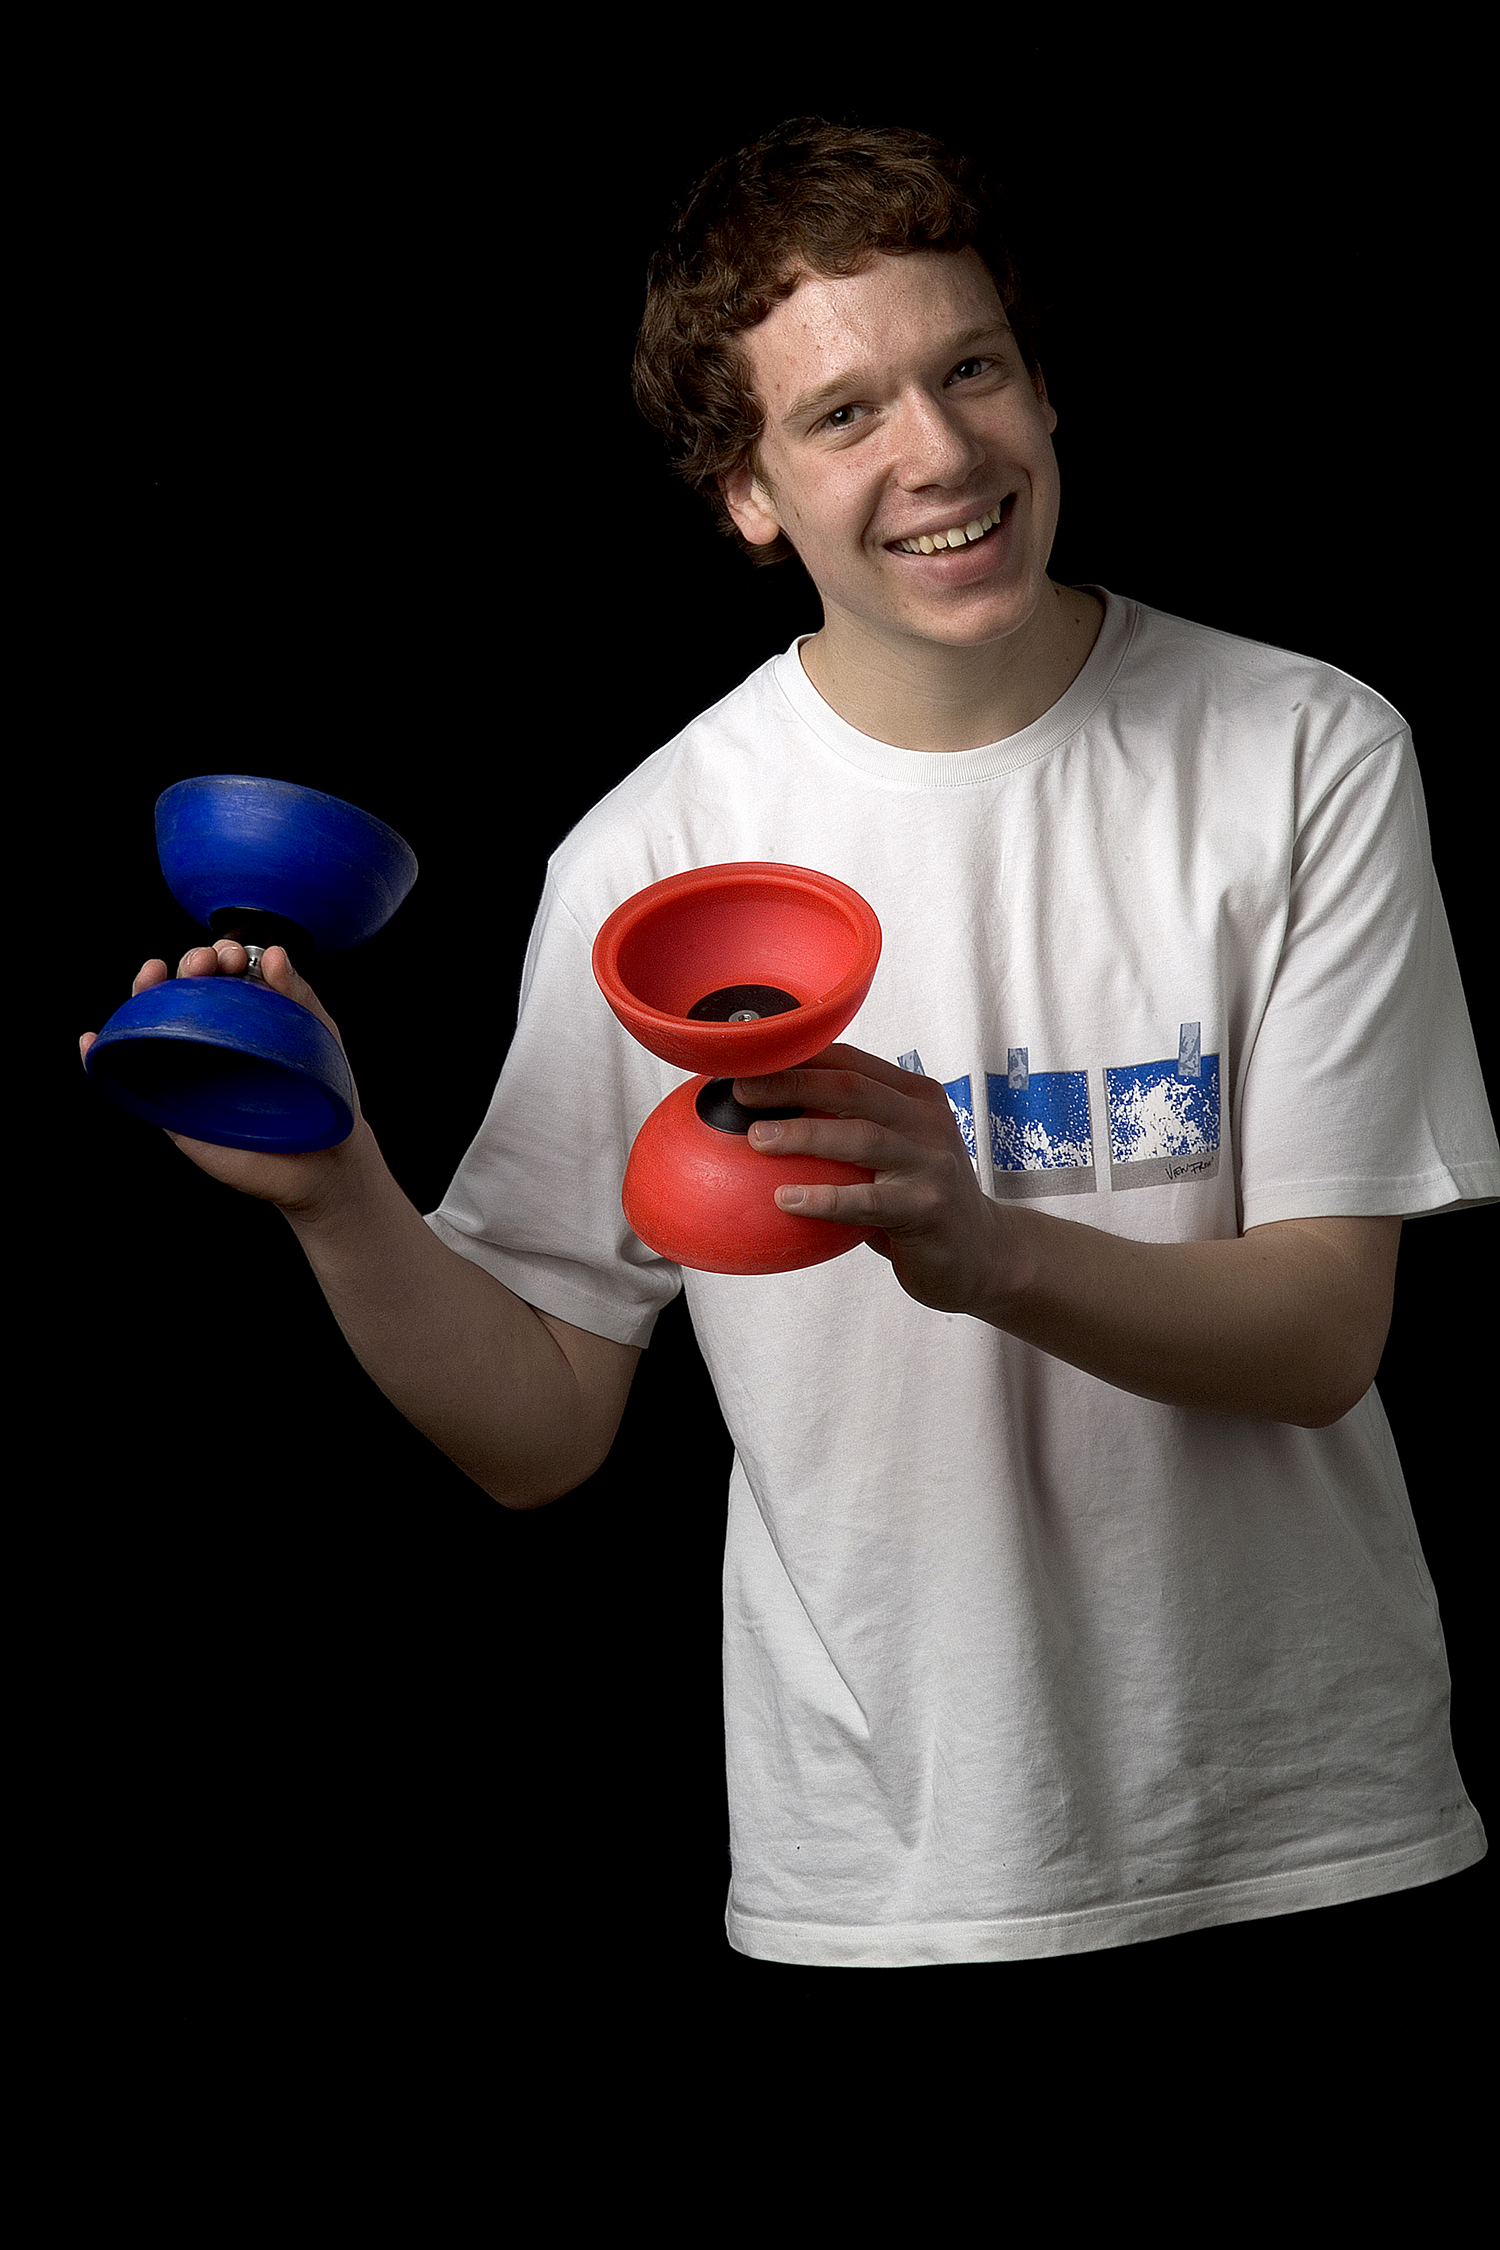 Juggler, National Centre for Circus Arts, London. Portrait by Anthony Oliver